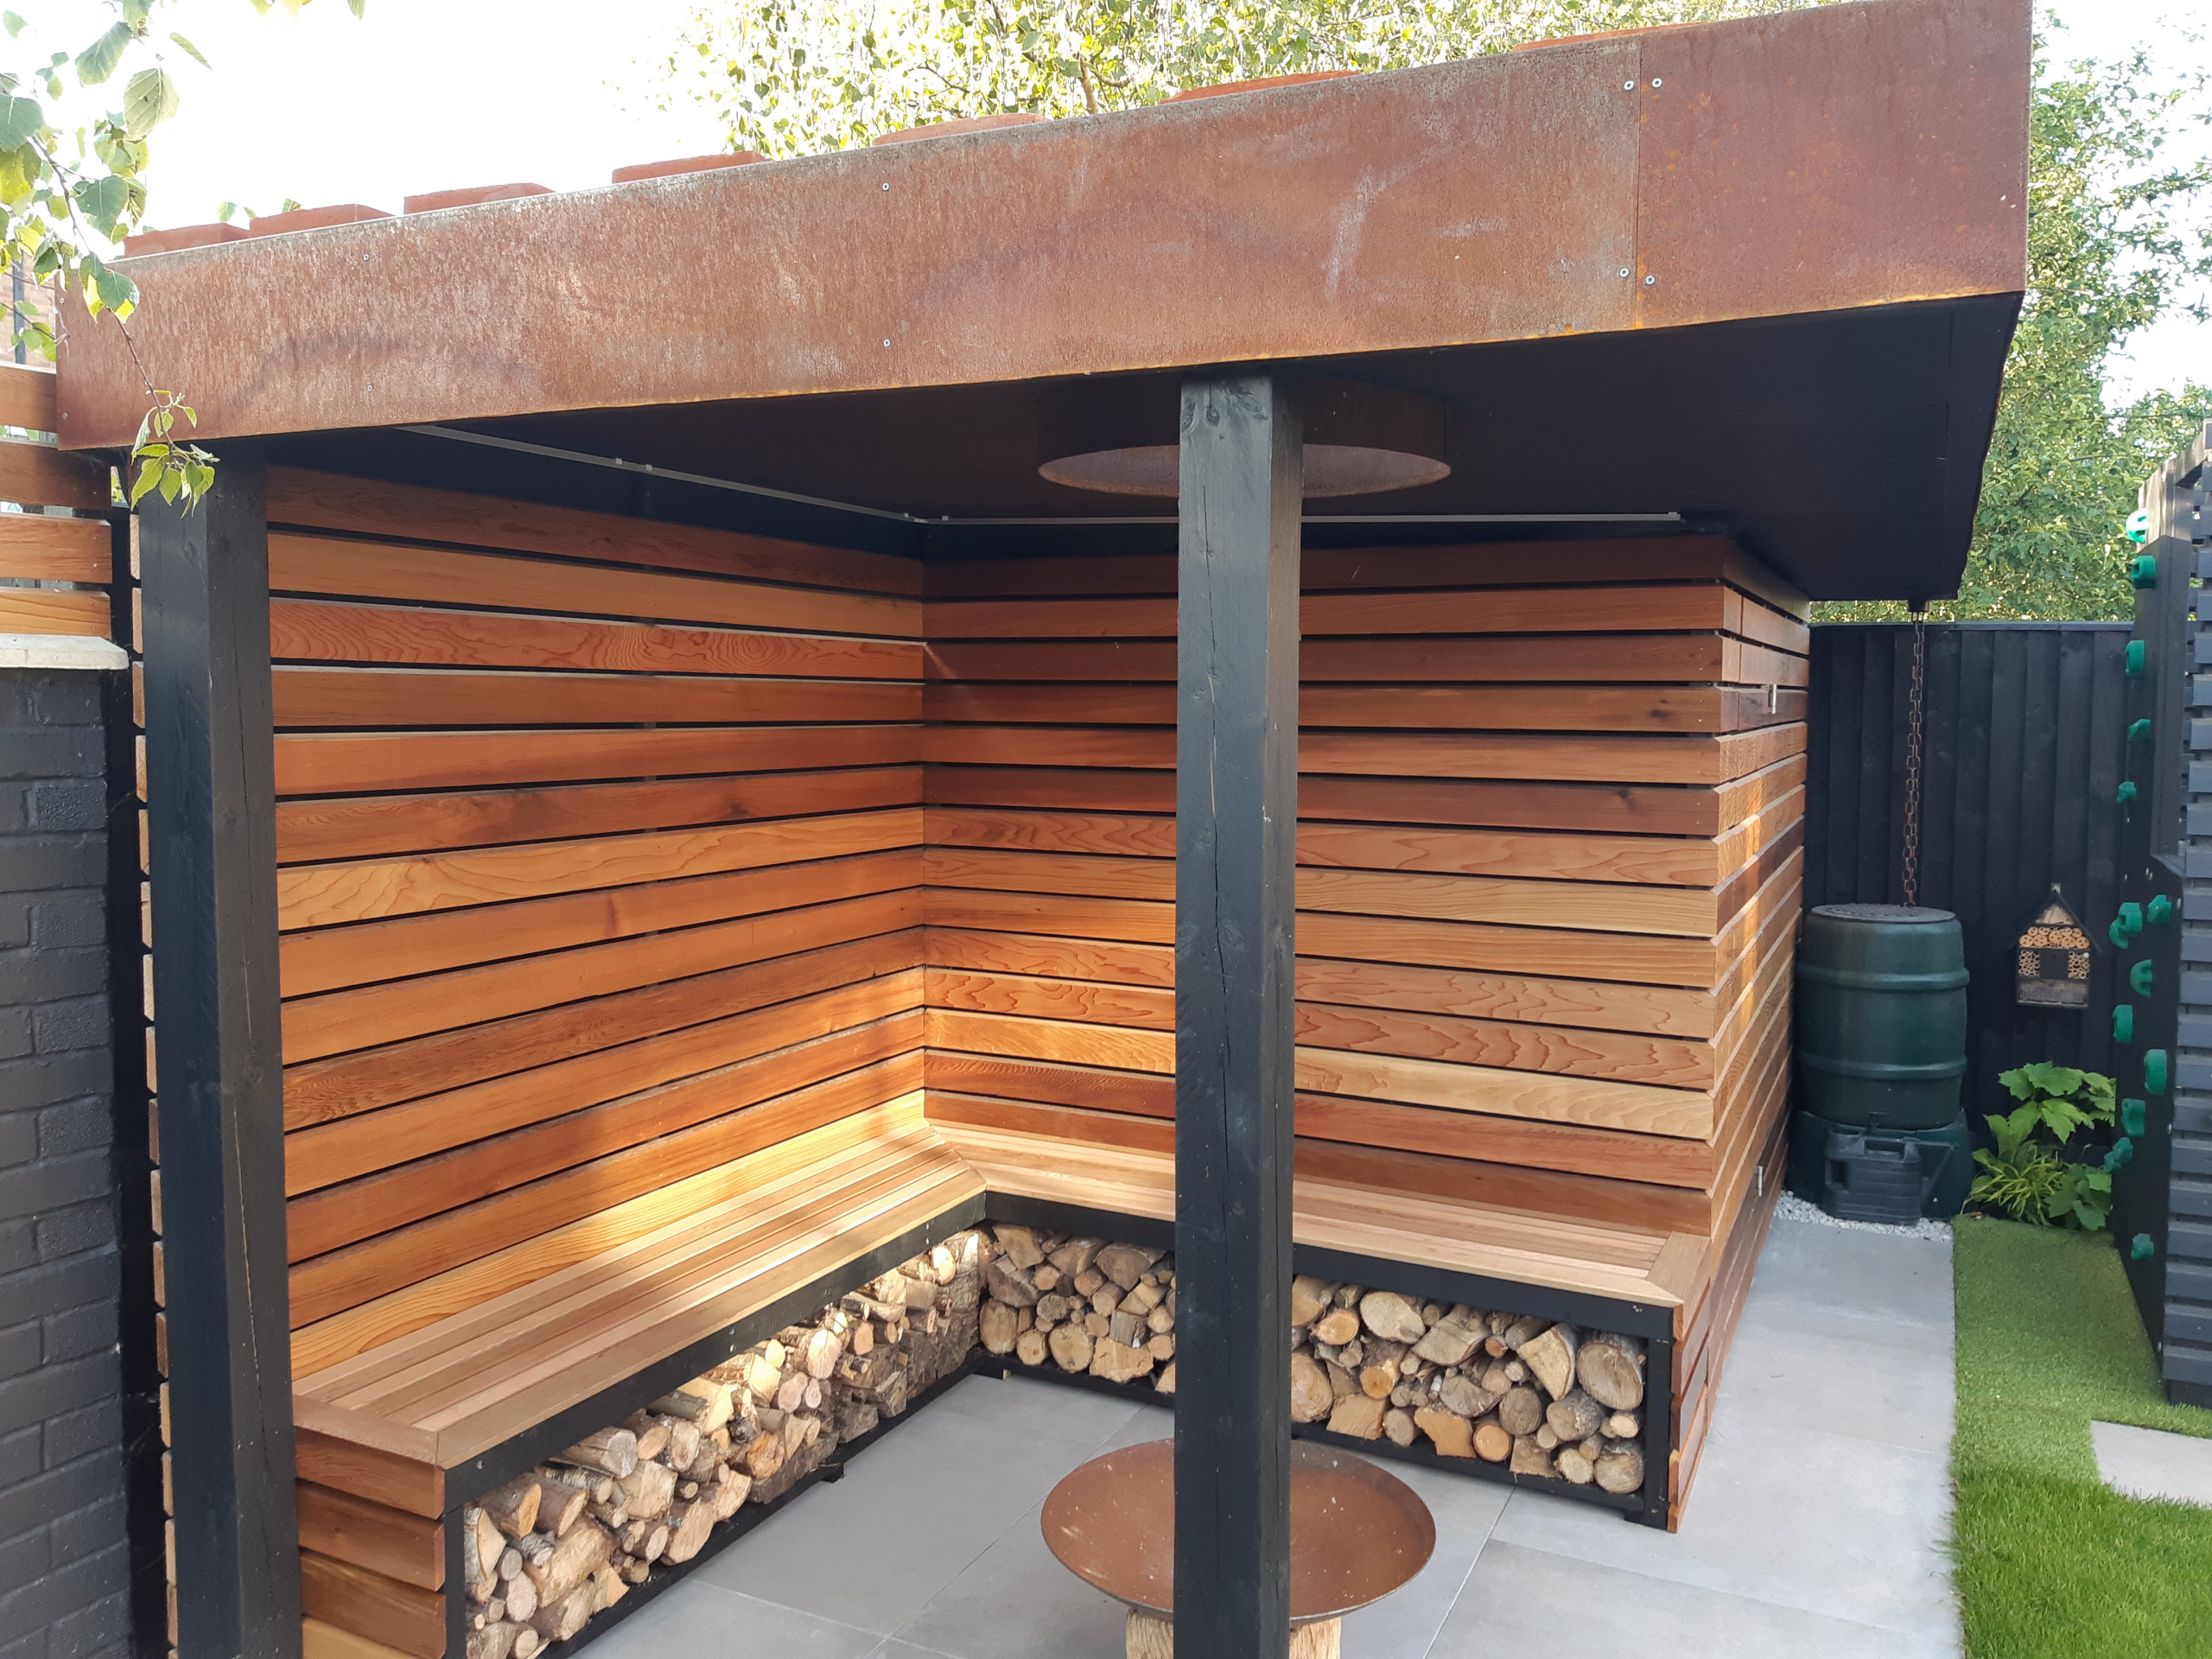 Bespoke shed and covered seating area